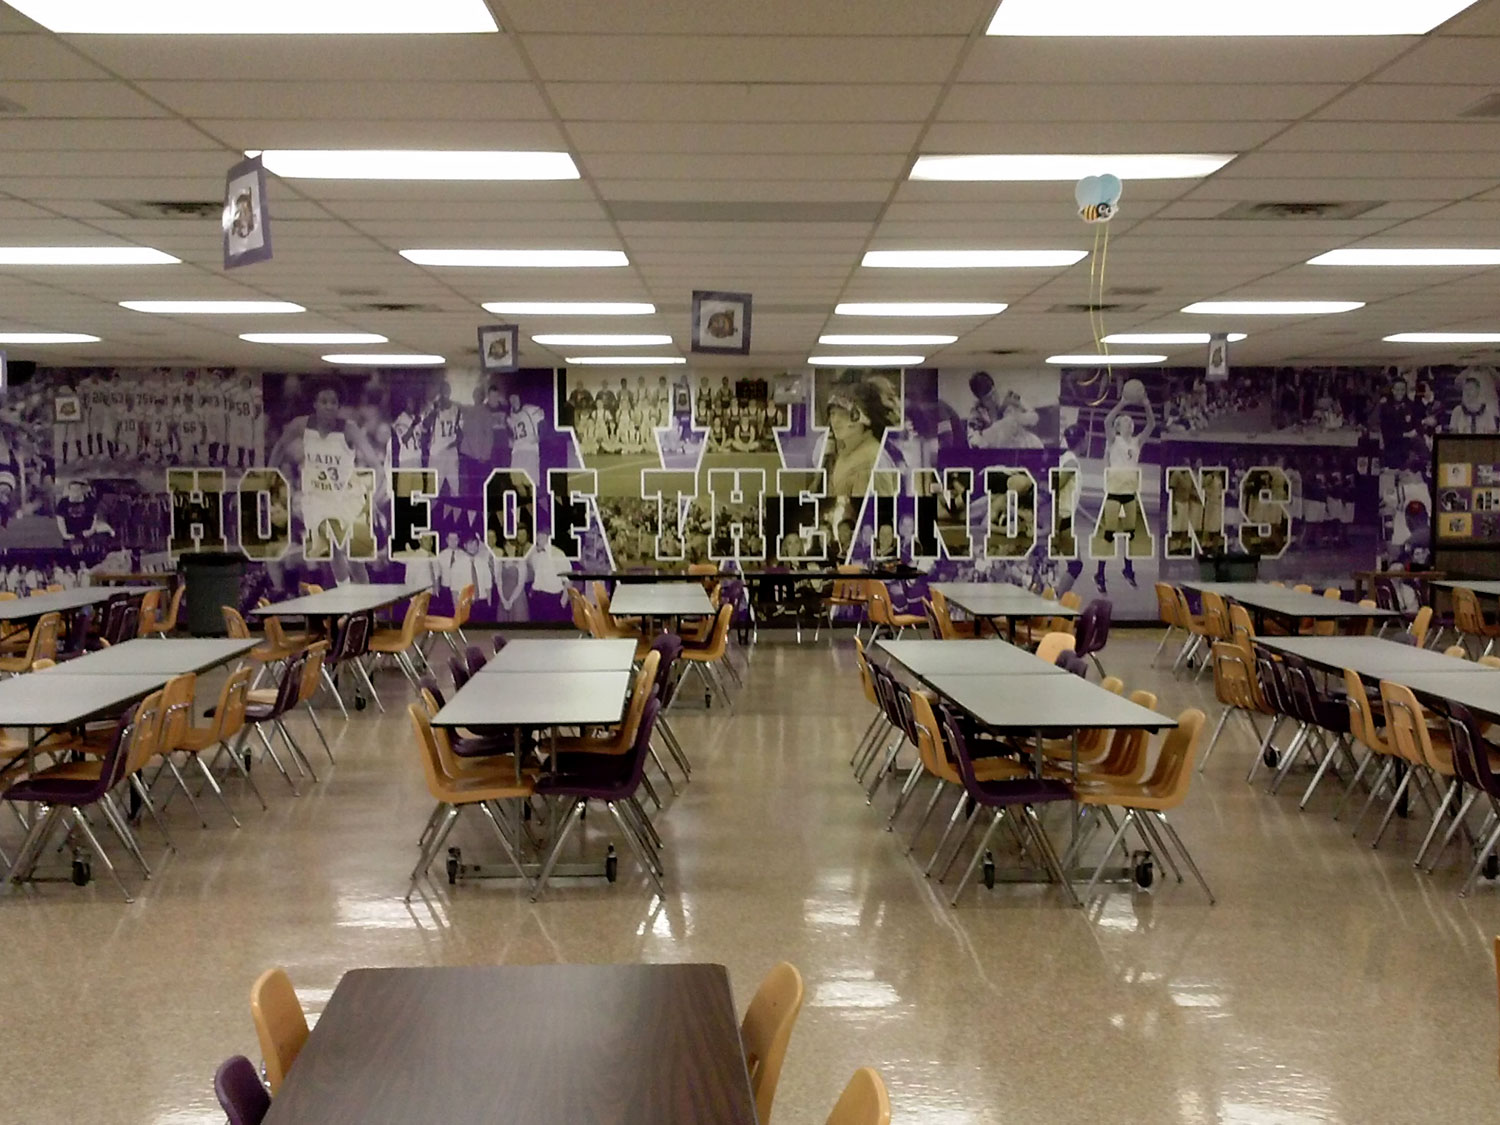 Toledo Waite High School Cafeteria Wall Graphic